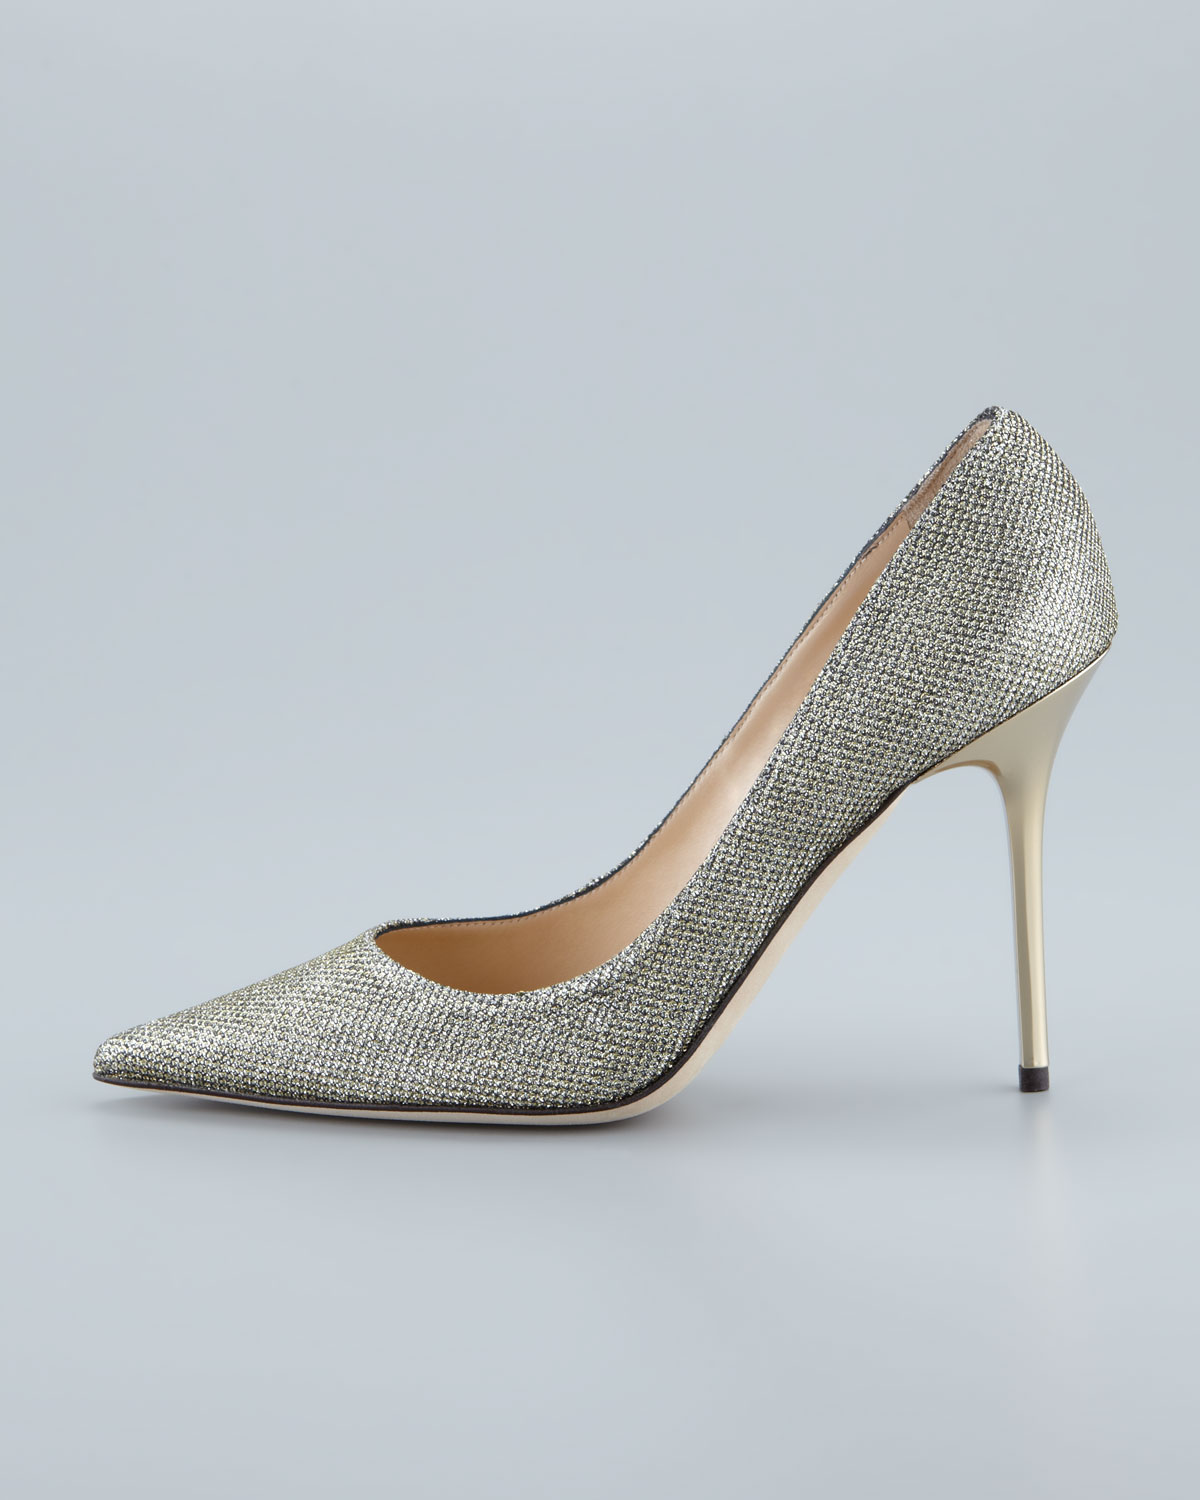 d3f810725f6 Jimmy Choo Abel Anthracite Lamé Glitter Pointy Toe Pumps  ss16  heels   fashion  Gallery